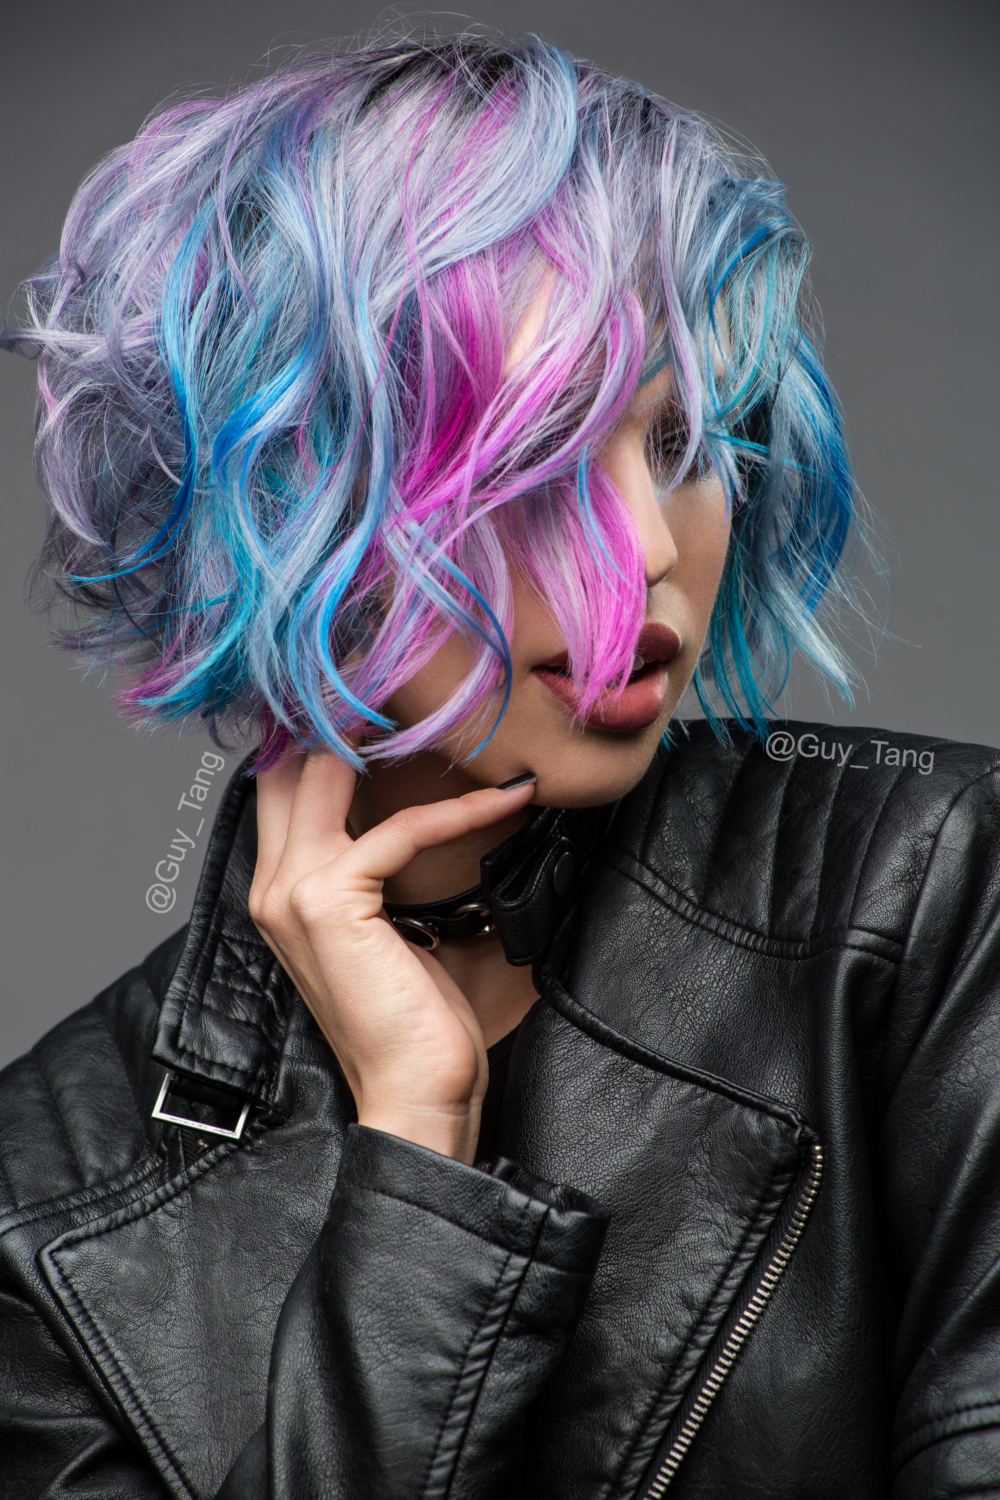 This Famous Colorist Just Launched His Own Line Making It Easier To